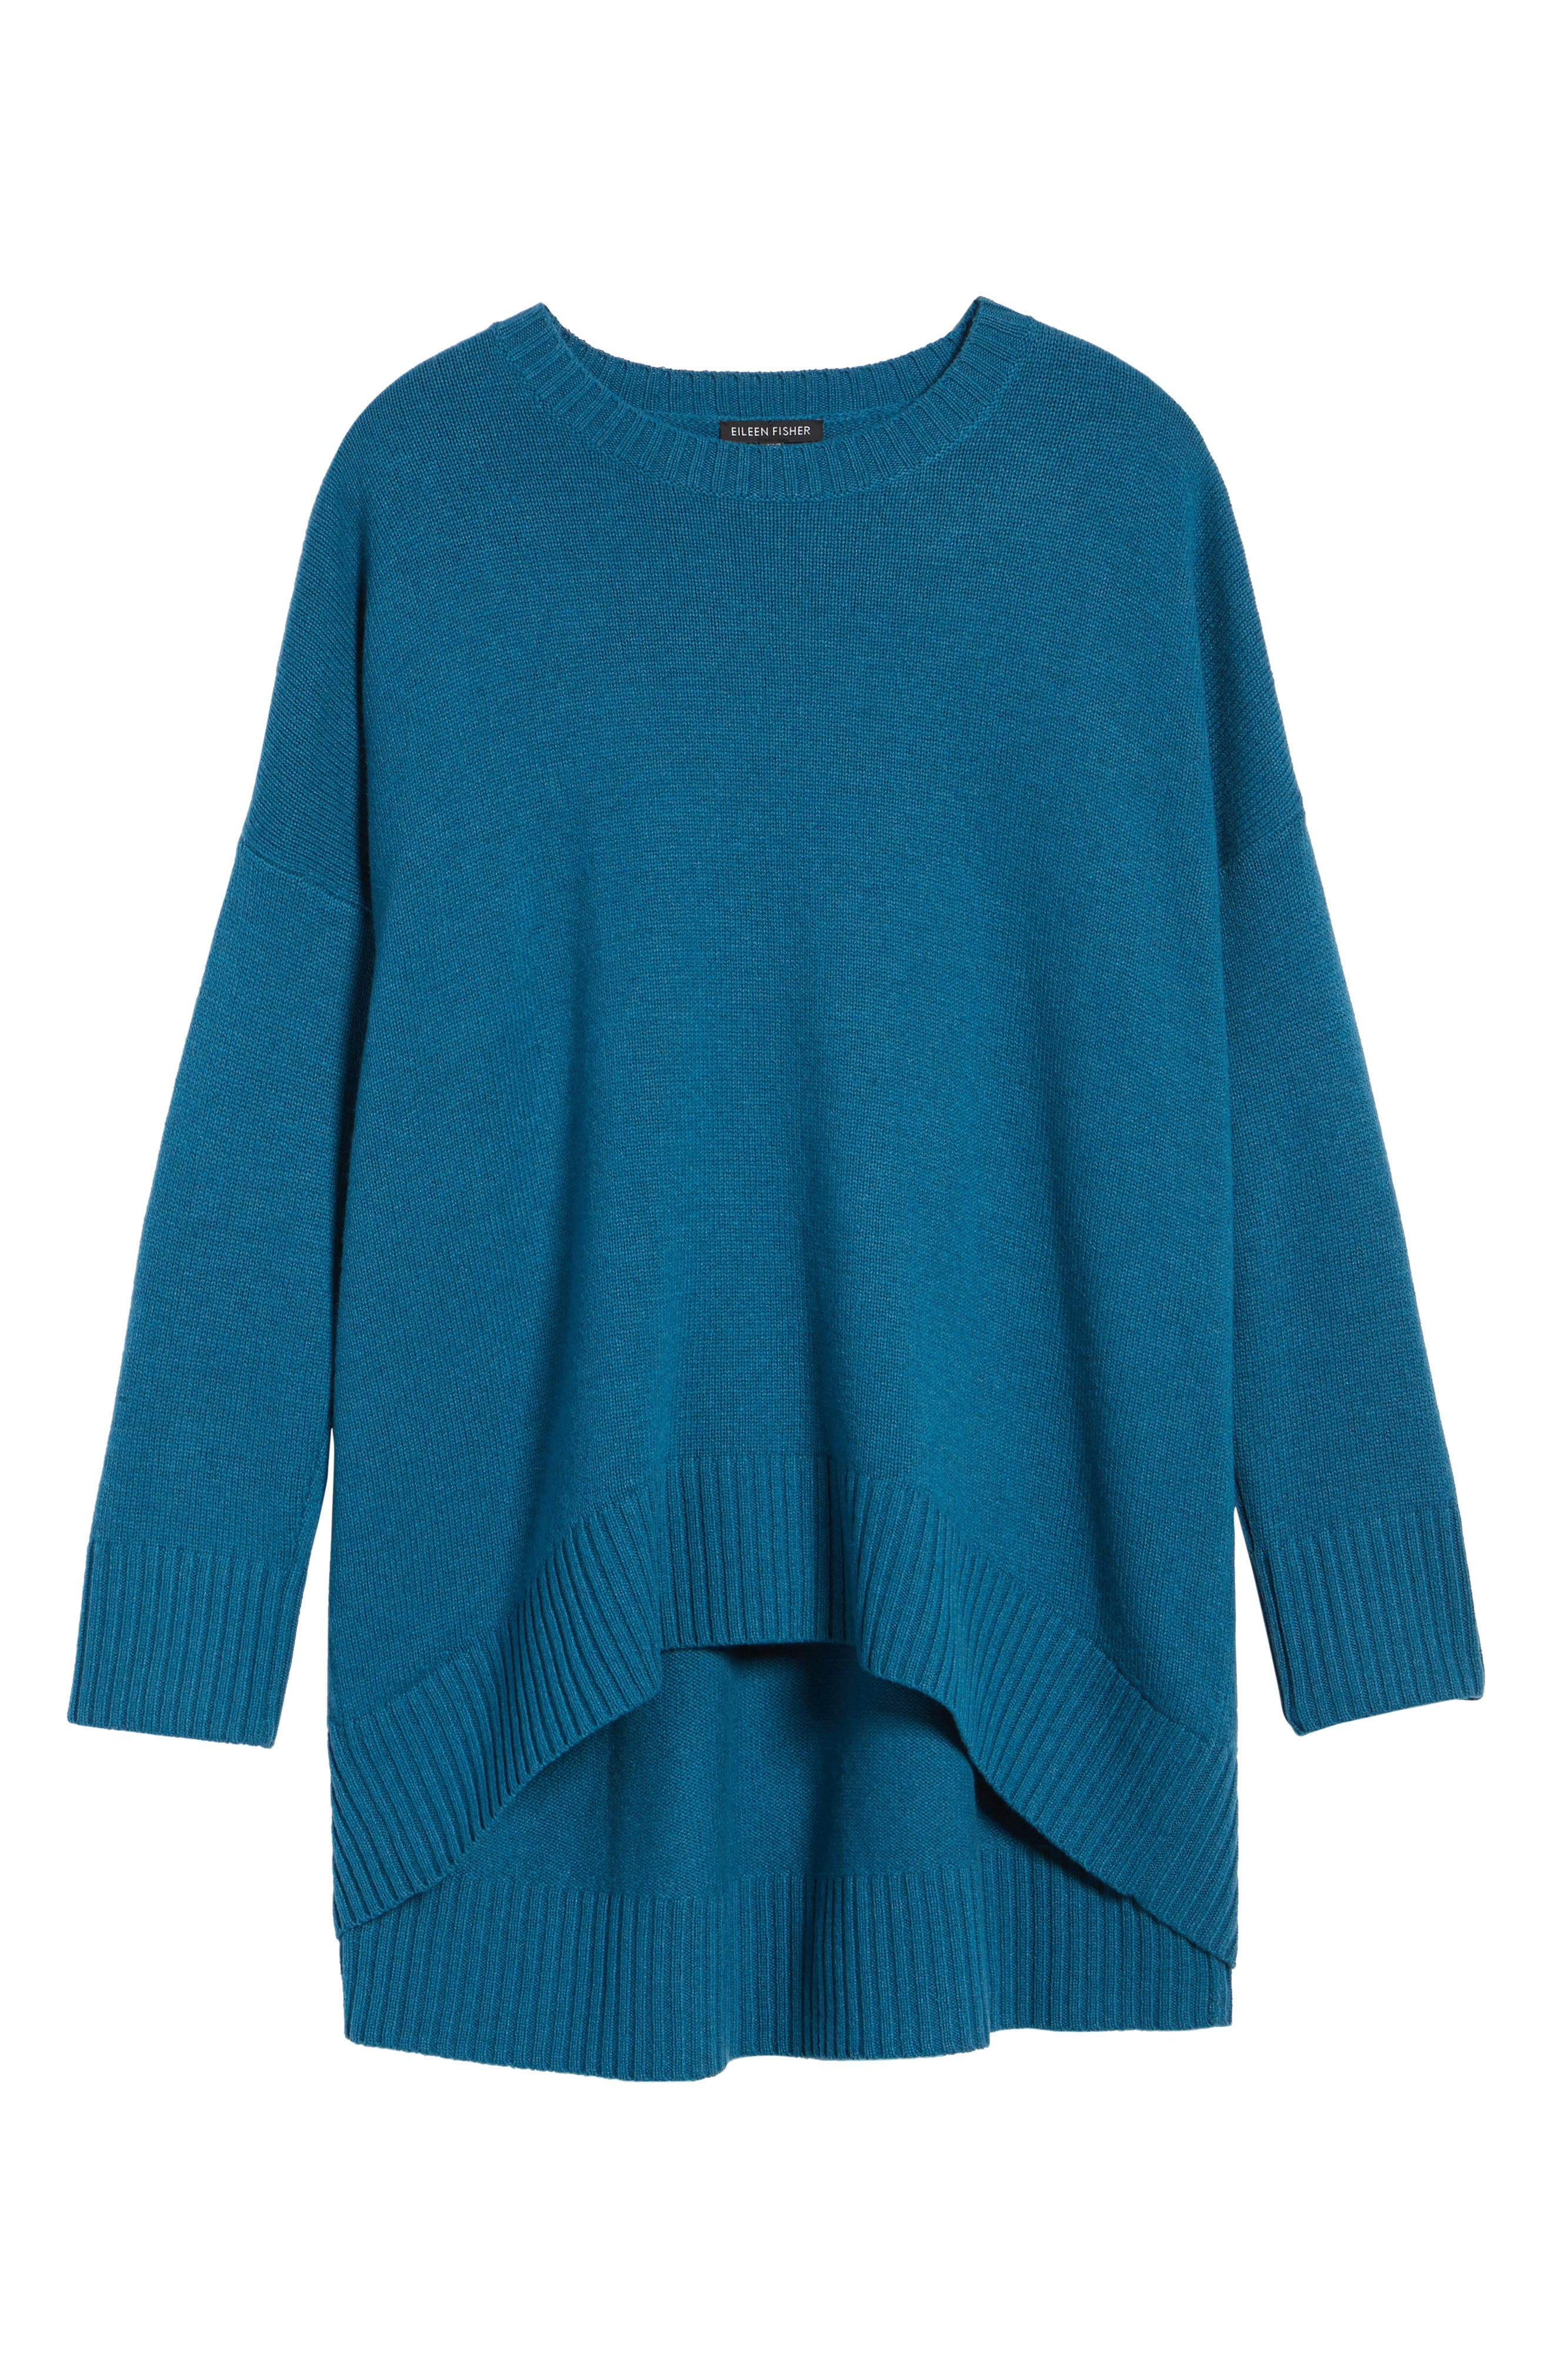 Cashmere & Wool Blend Oversize Sweater,                             Alternate thumbnail 6, color,                             Nile